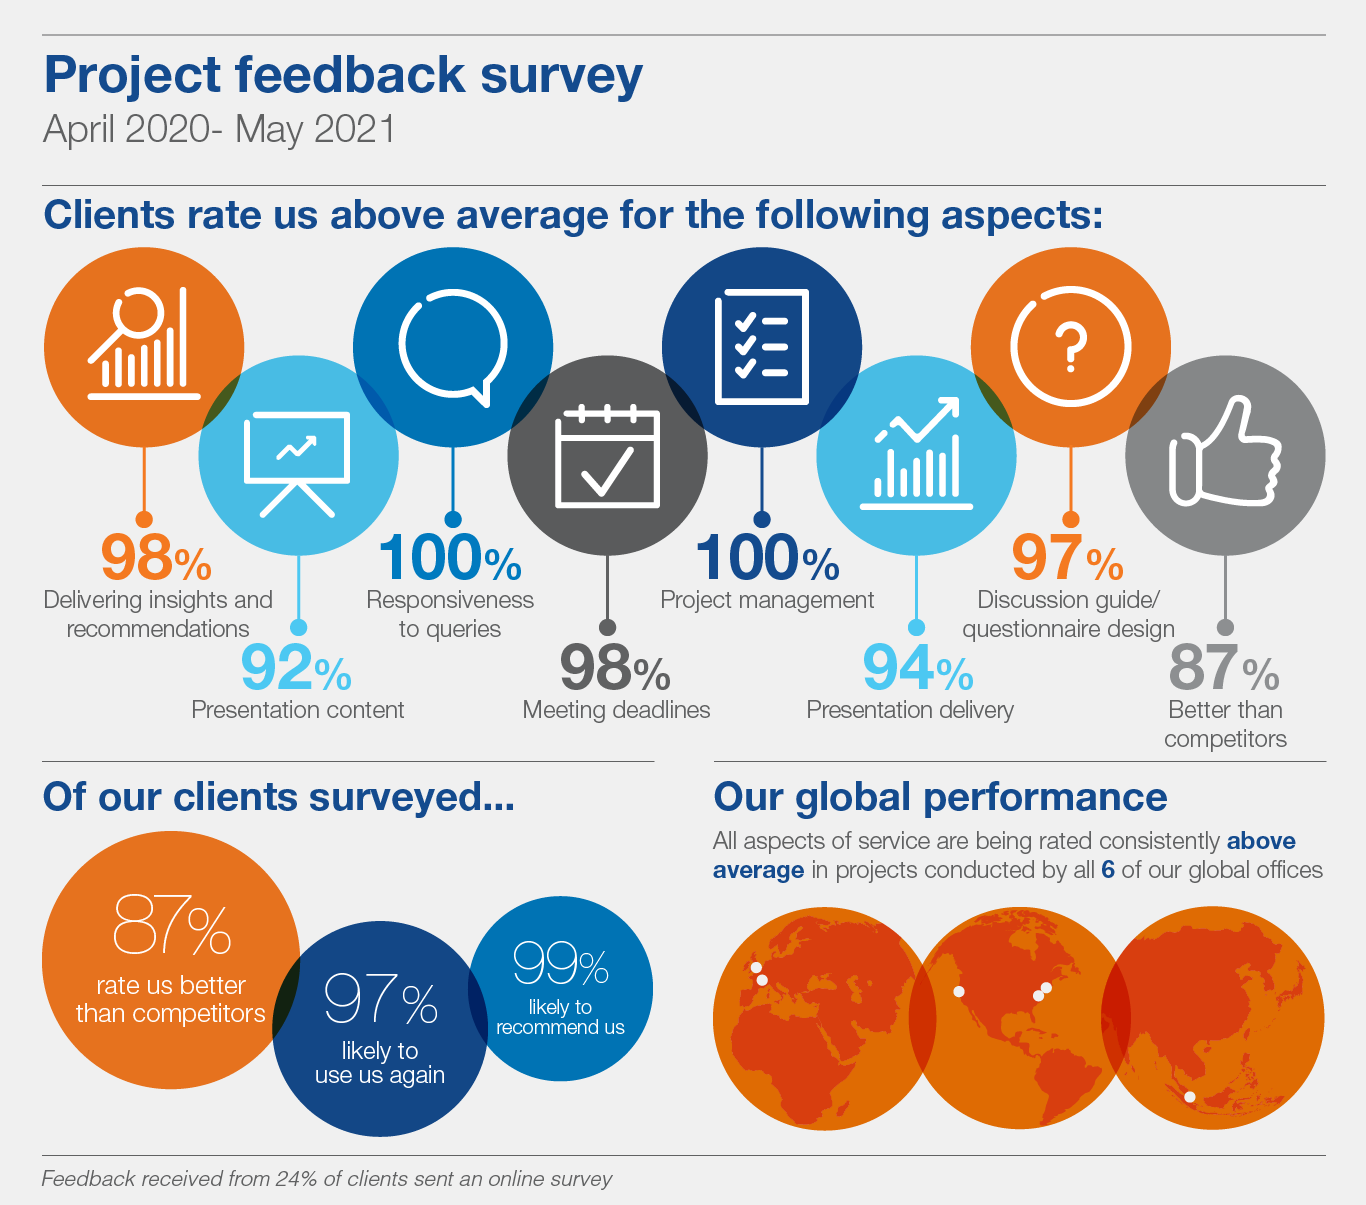 Project feedback survey infographic July 2021